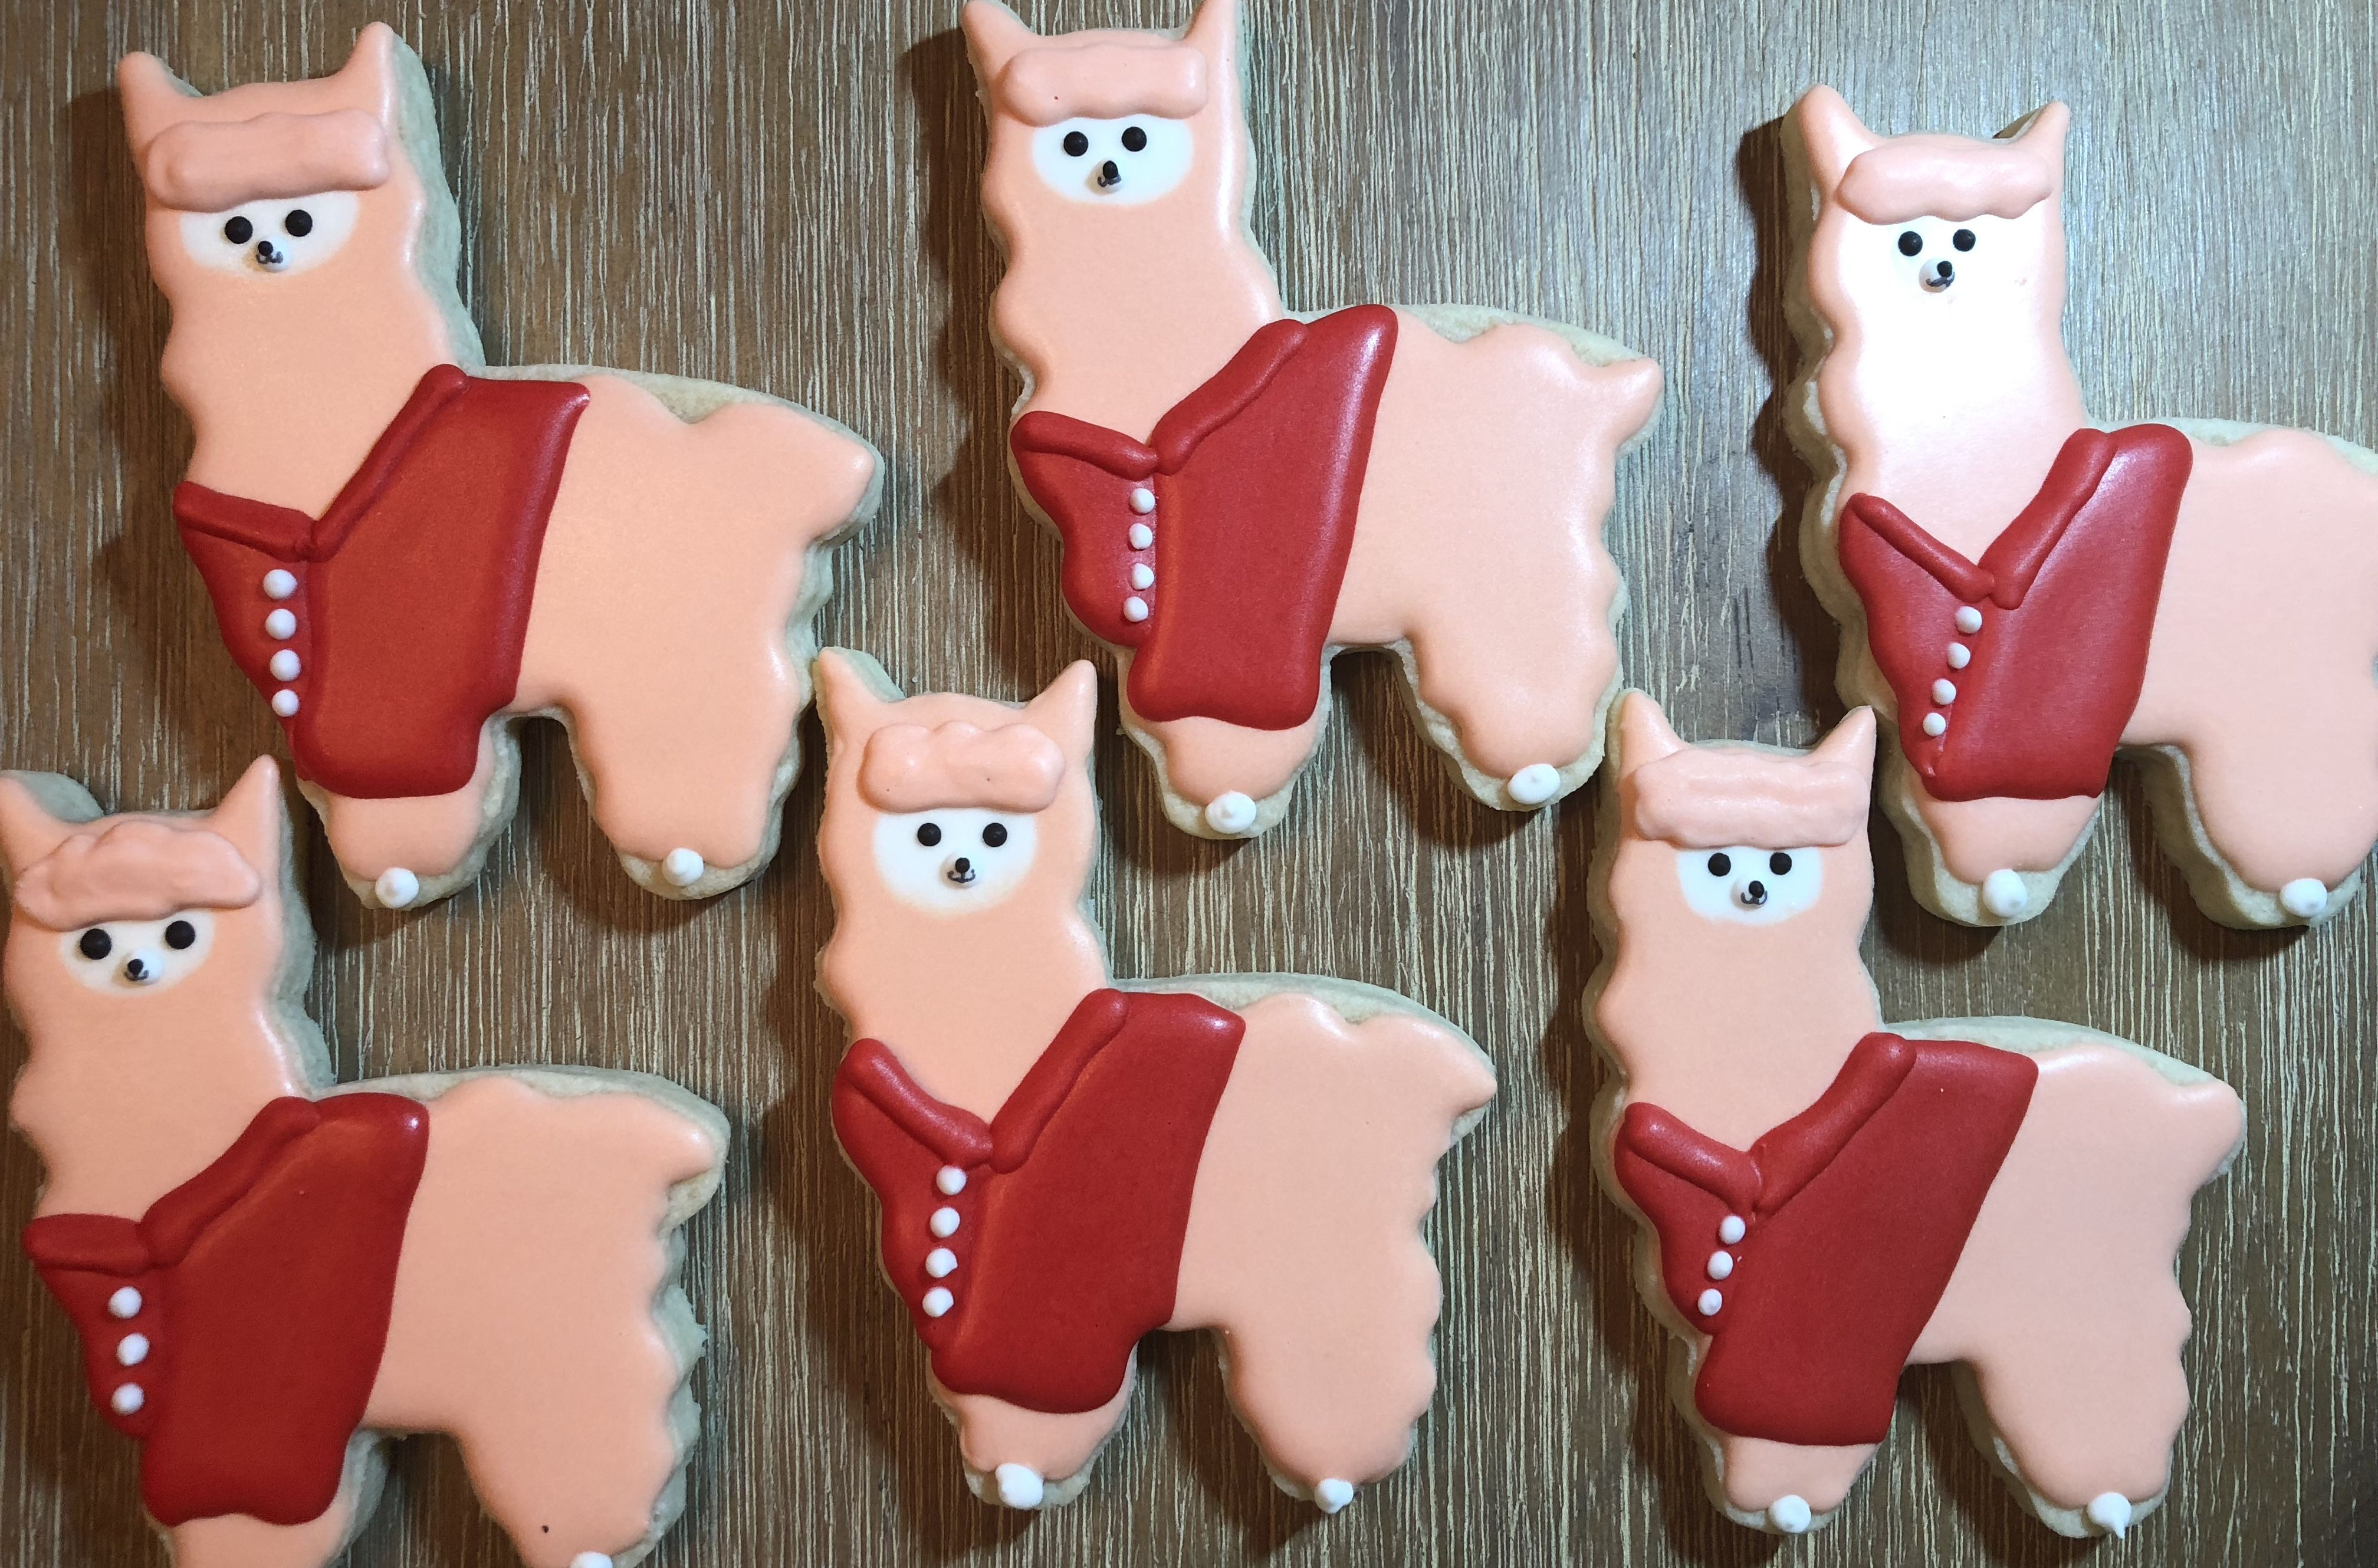 Llama Llama Red Pajama Cookies With Images